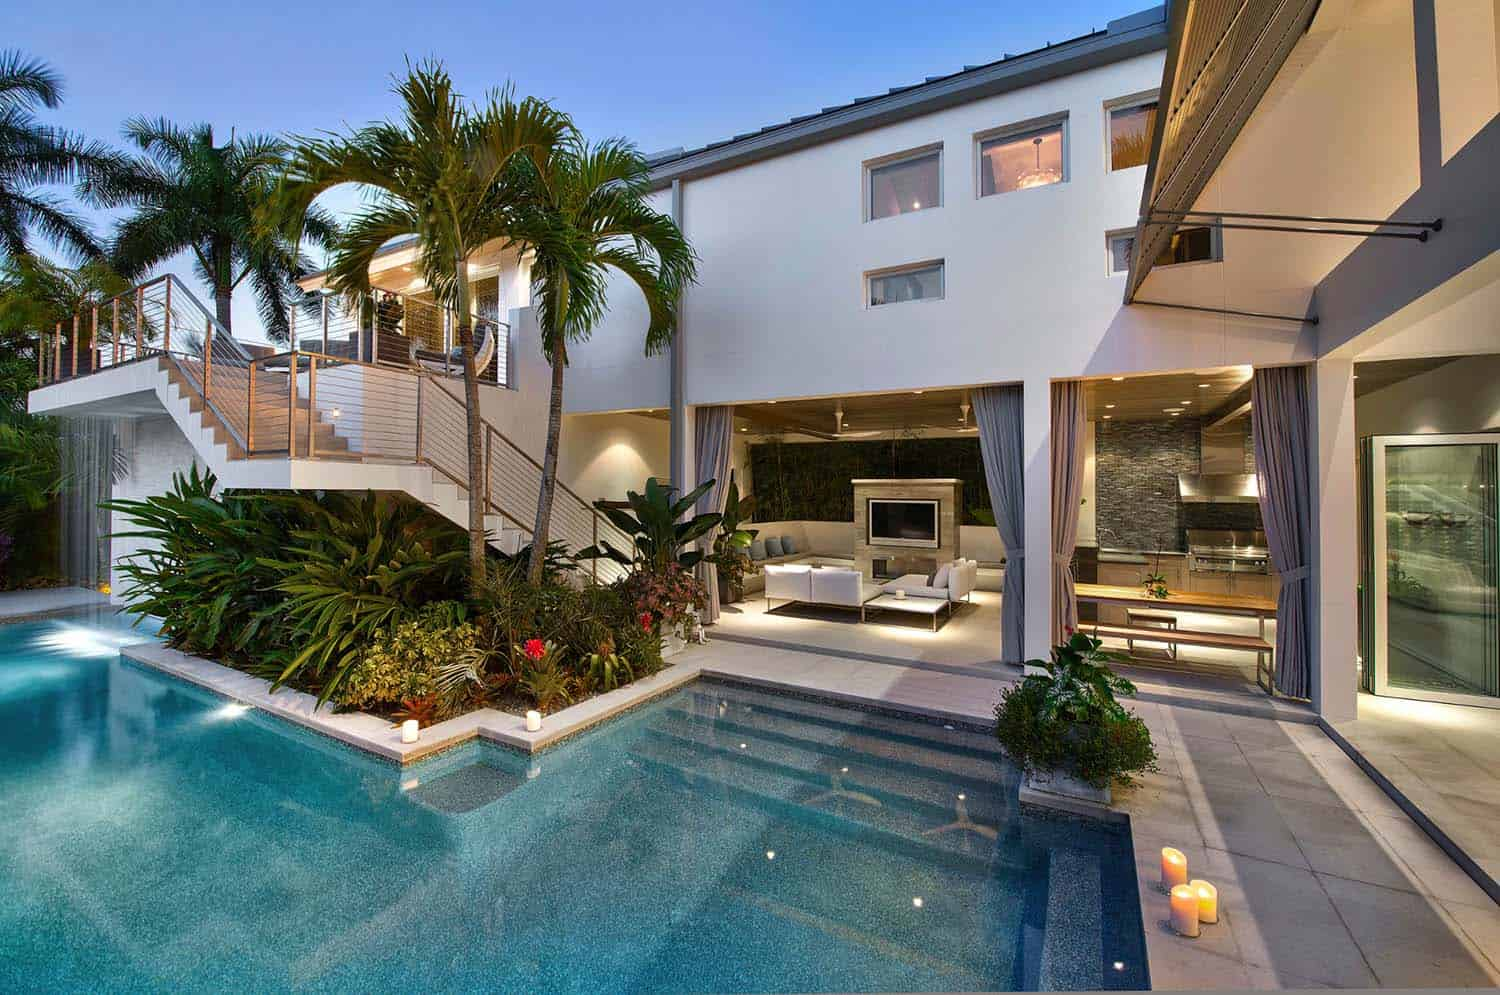 Exquisite modern coastal home in Florida with luminous interiors